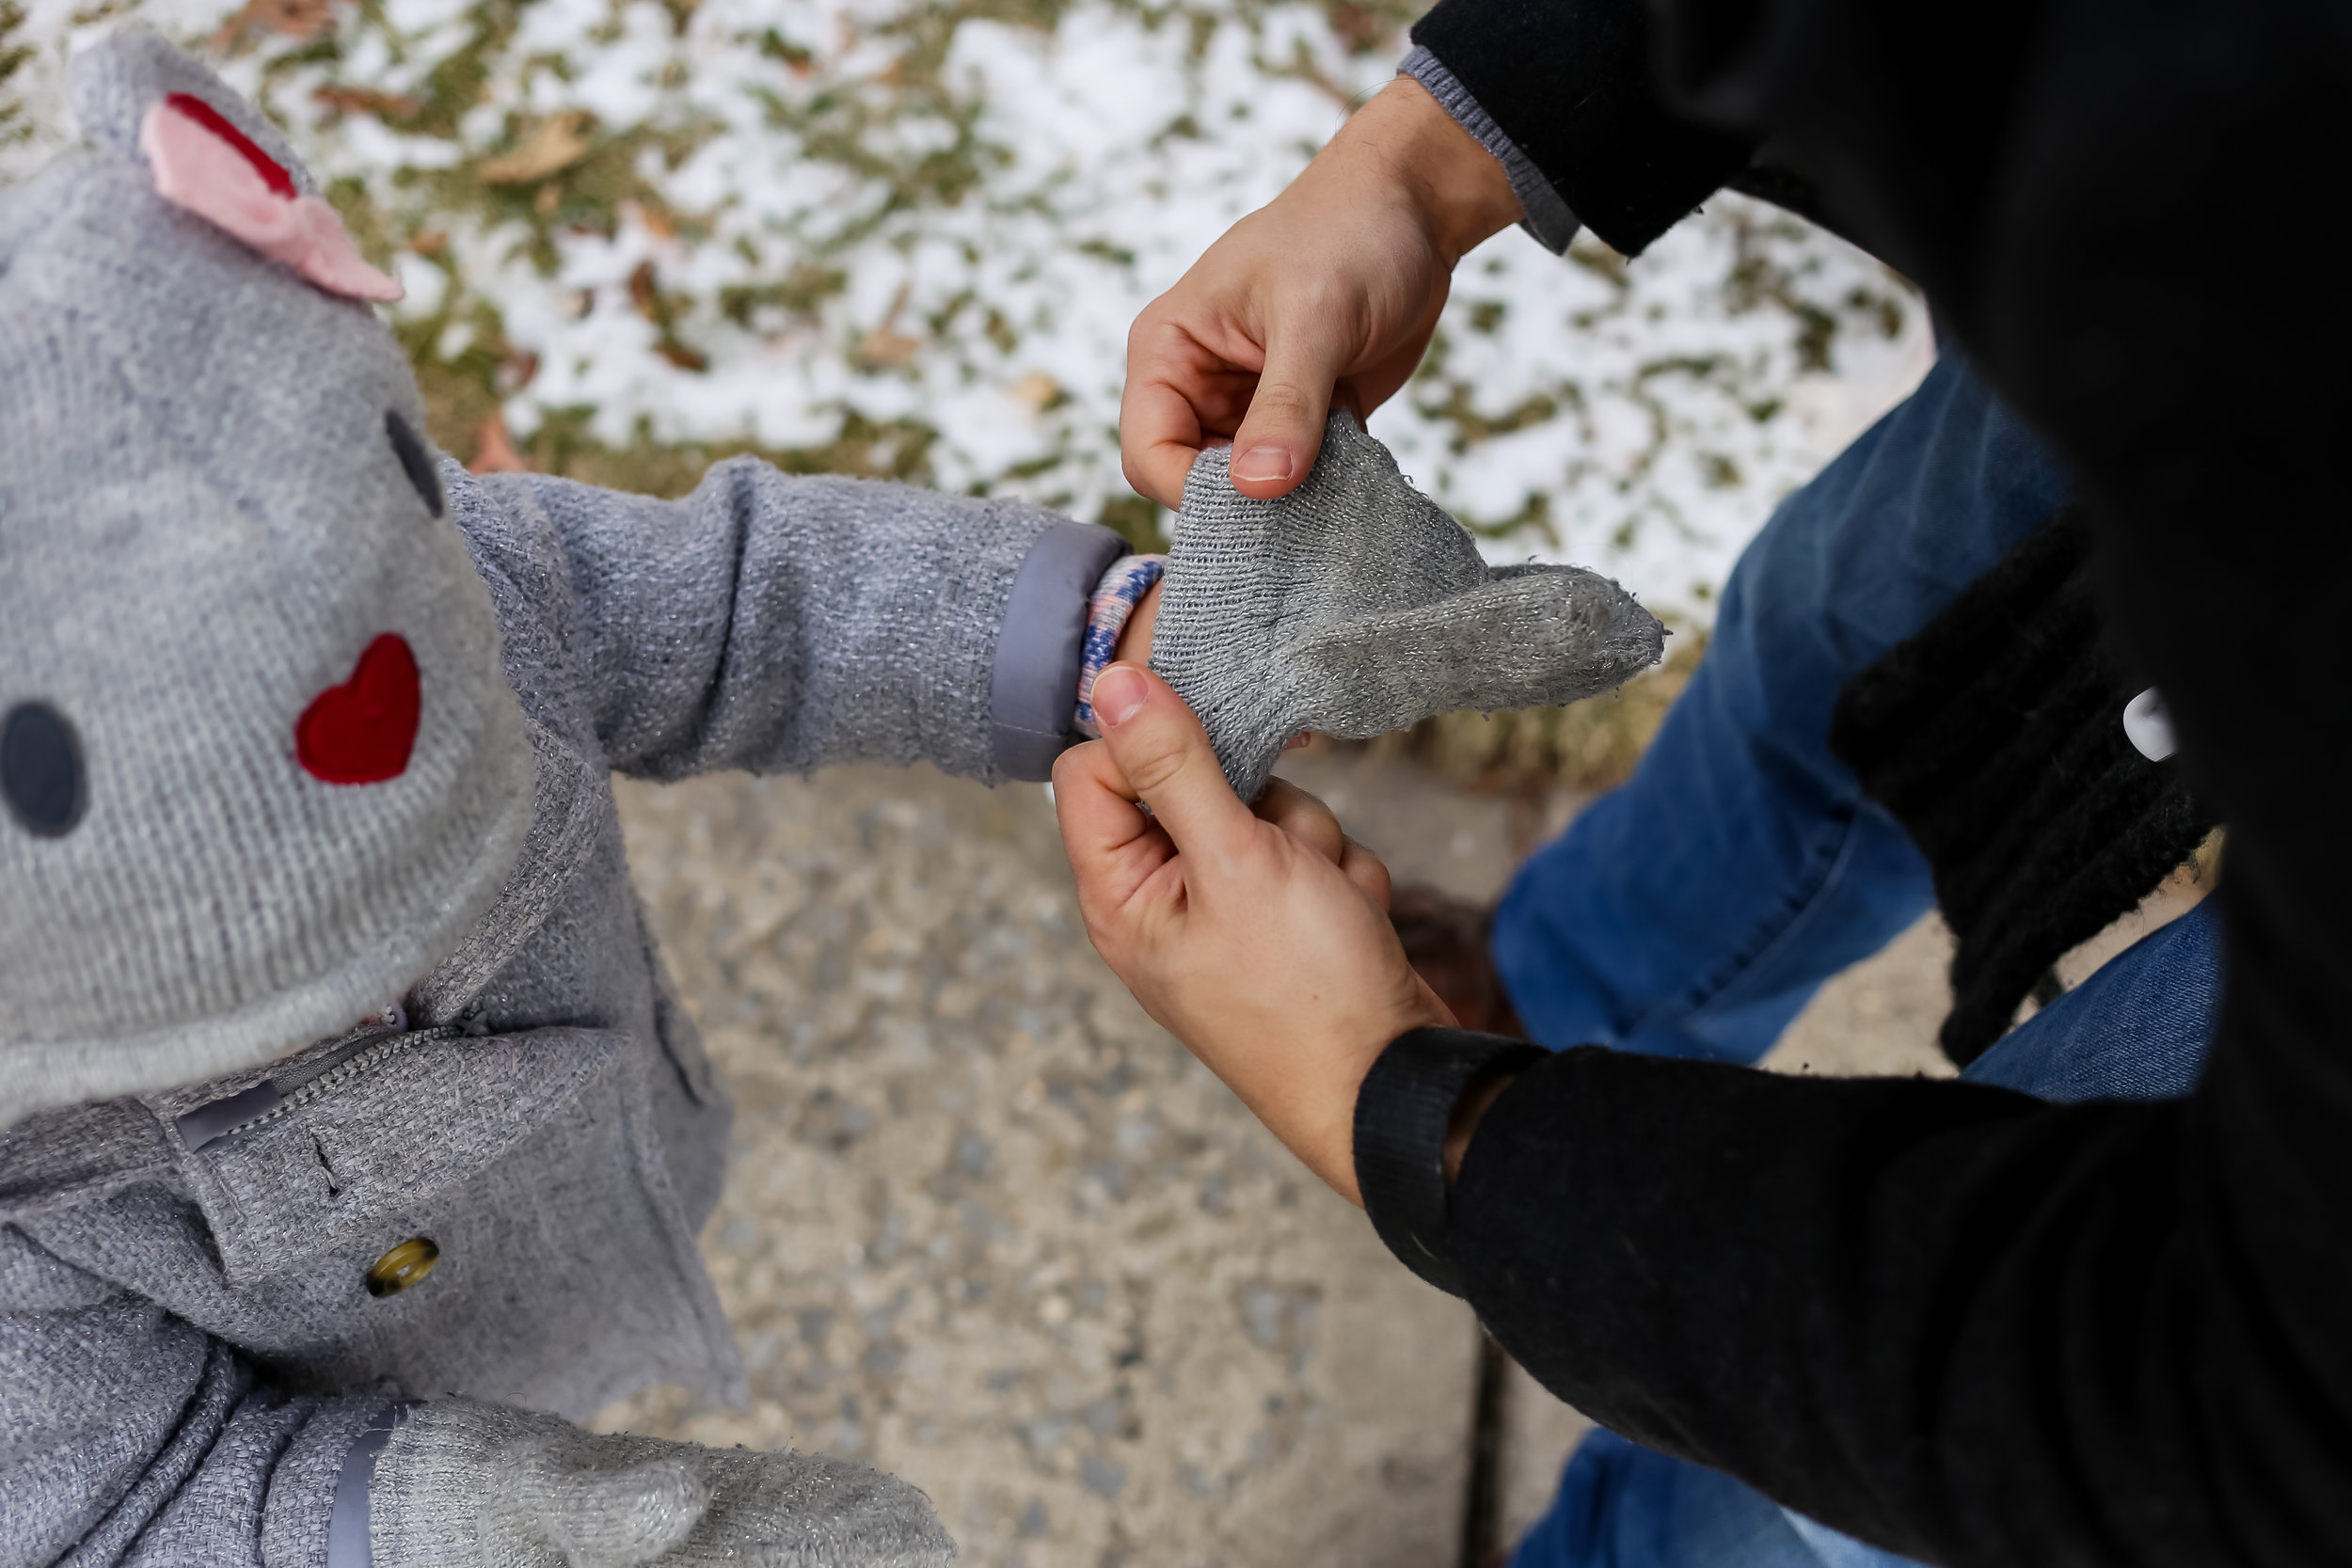 A father helping his daughter on with her mittens. Documentary family photography by Jen Grima of Lehigh Valley, Pennsylvania.